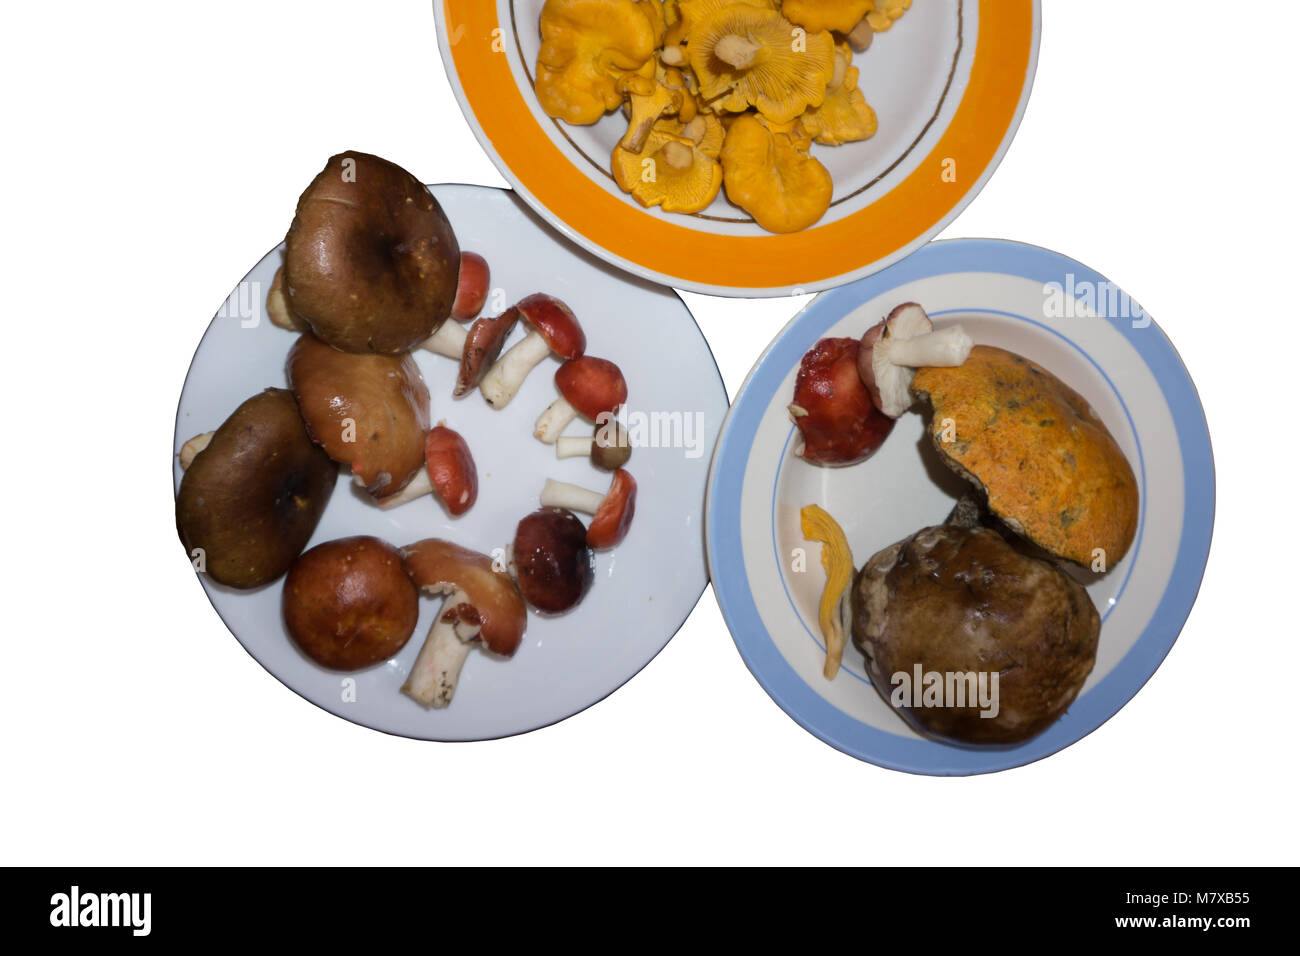 Fresh mushrooms in a tray on a white background, with clipping paths insulator - Stock Image